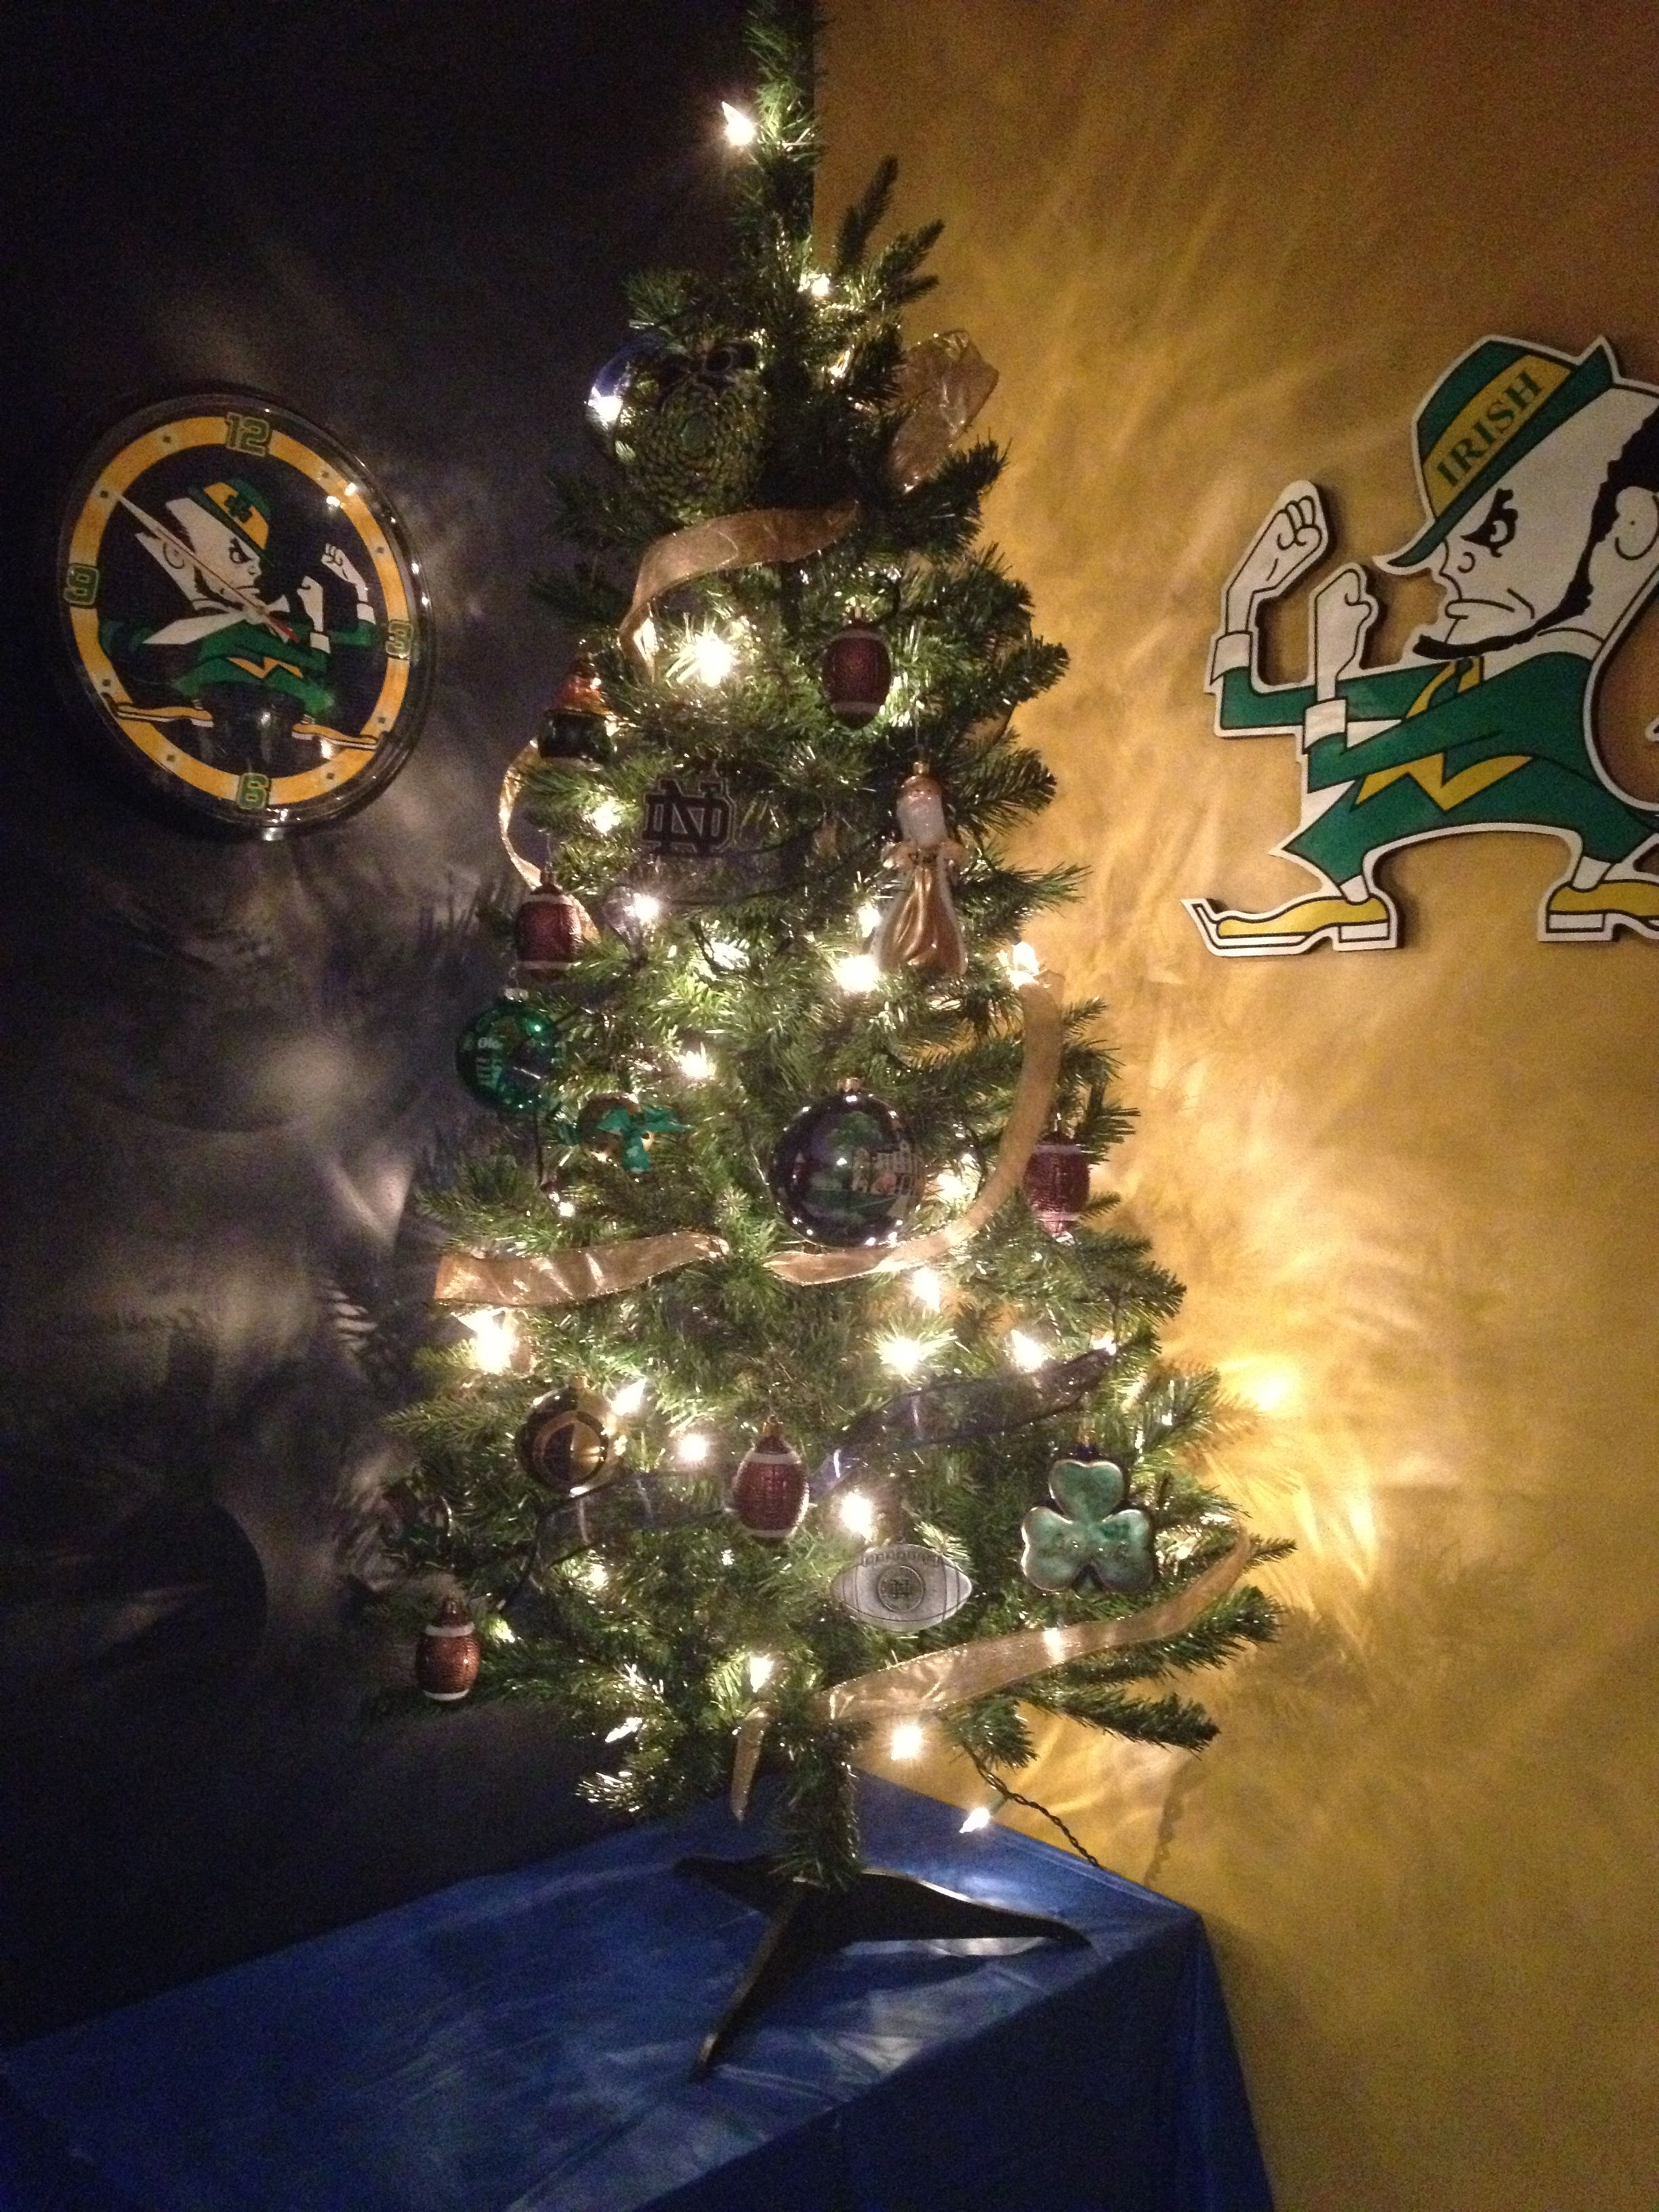 The Notre Dame Christmas tree I did for my hubby | My Creations ...